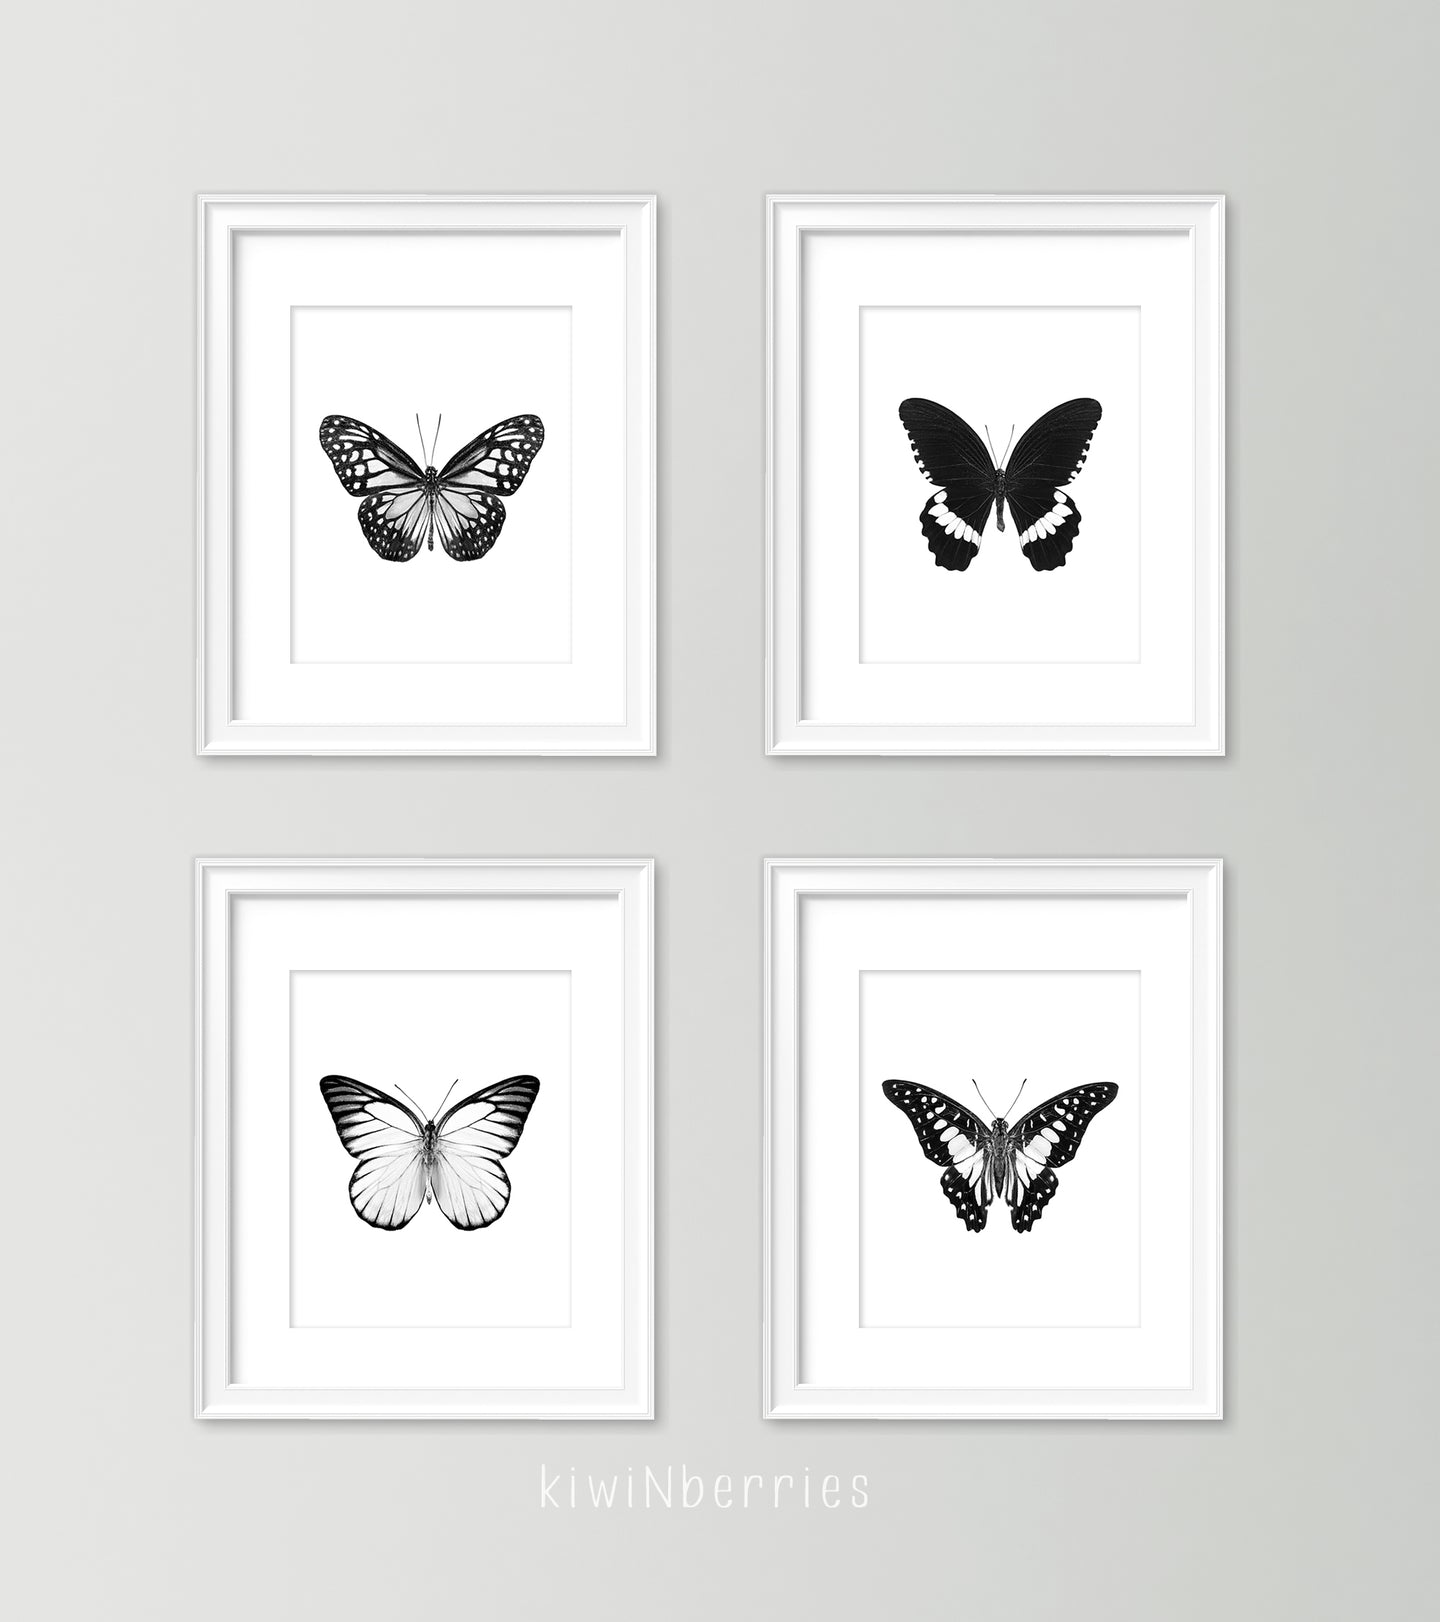 Monochrome Butterflies - set of 4